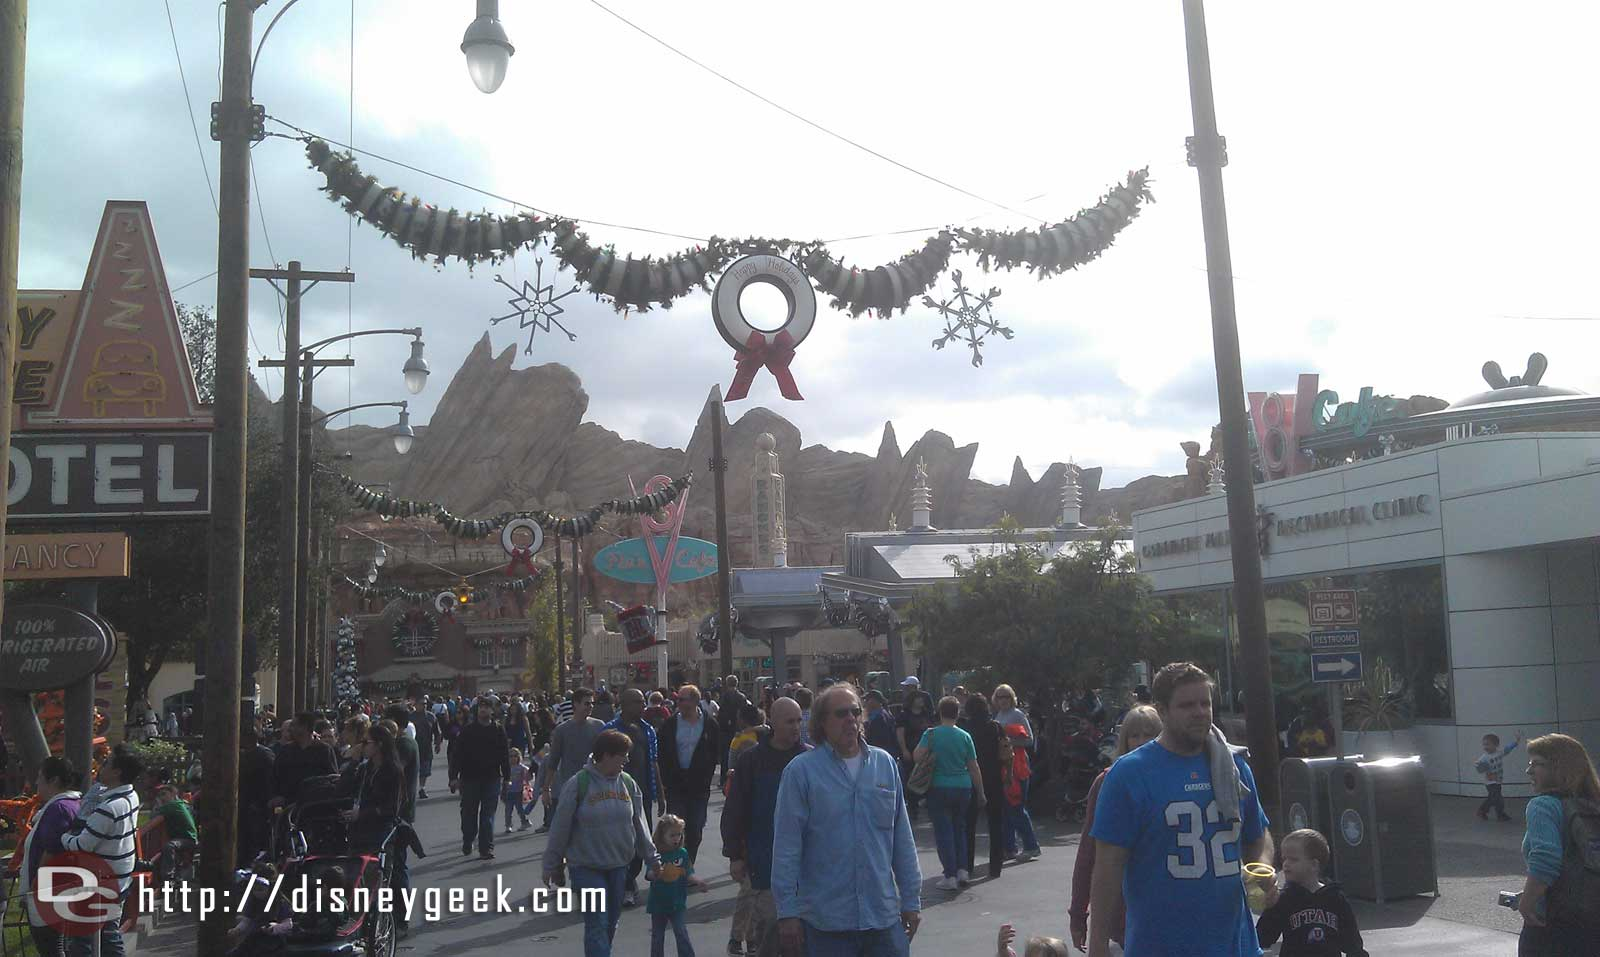 A look down Route 66 in #CarsLand as the sun is just coming out